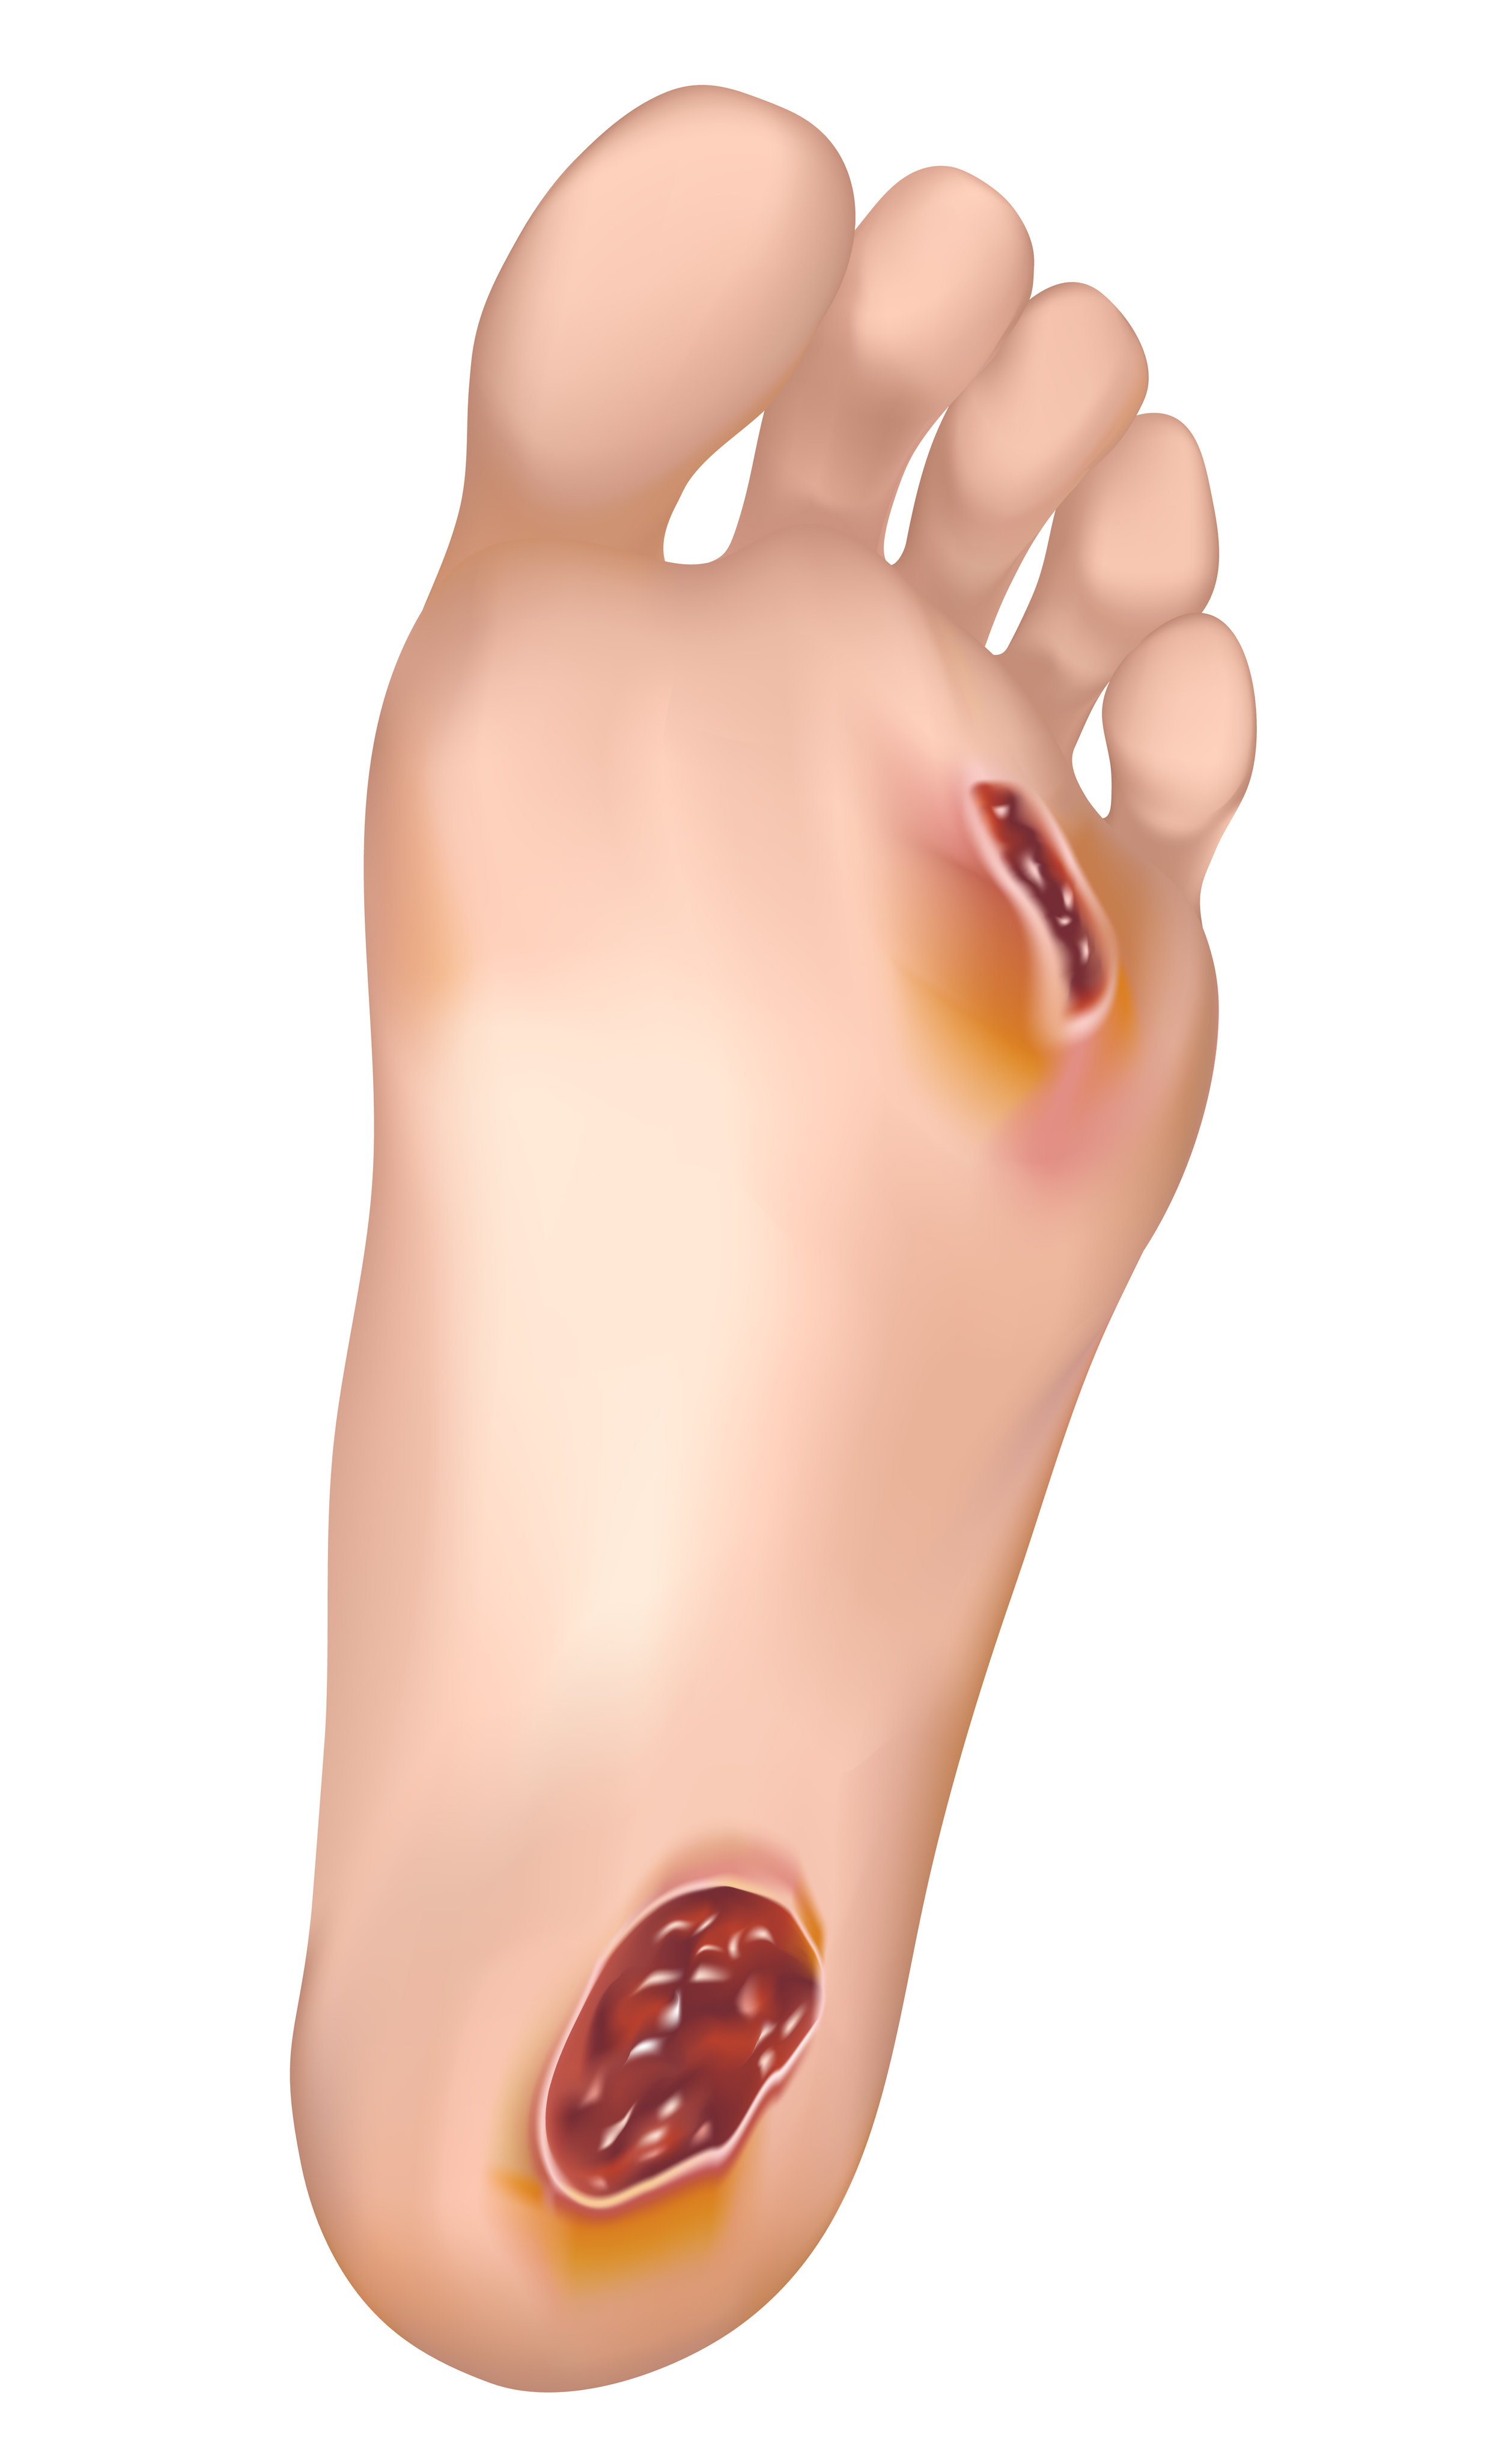 foot ulcer, diabetic wound care management in marquette, escanaba, upper peninsula, michigan